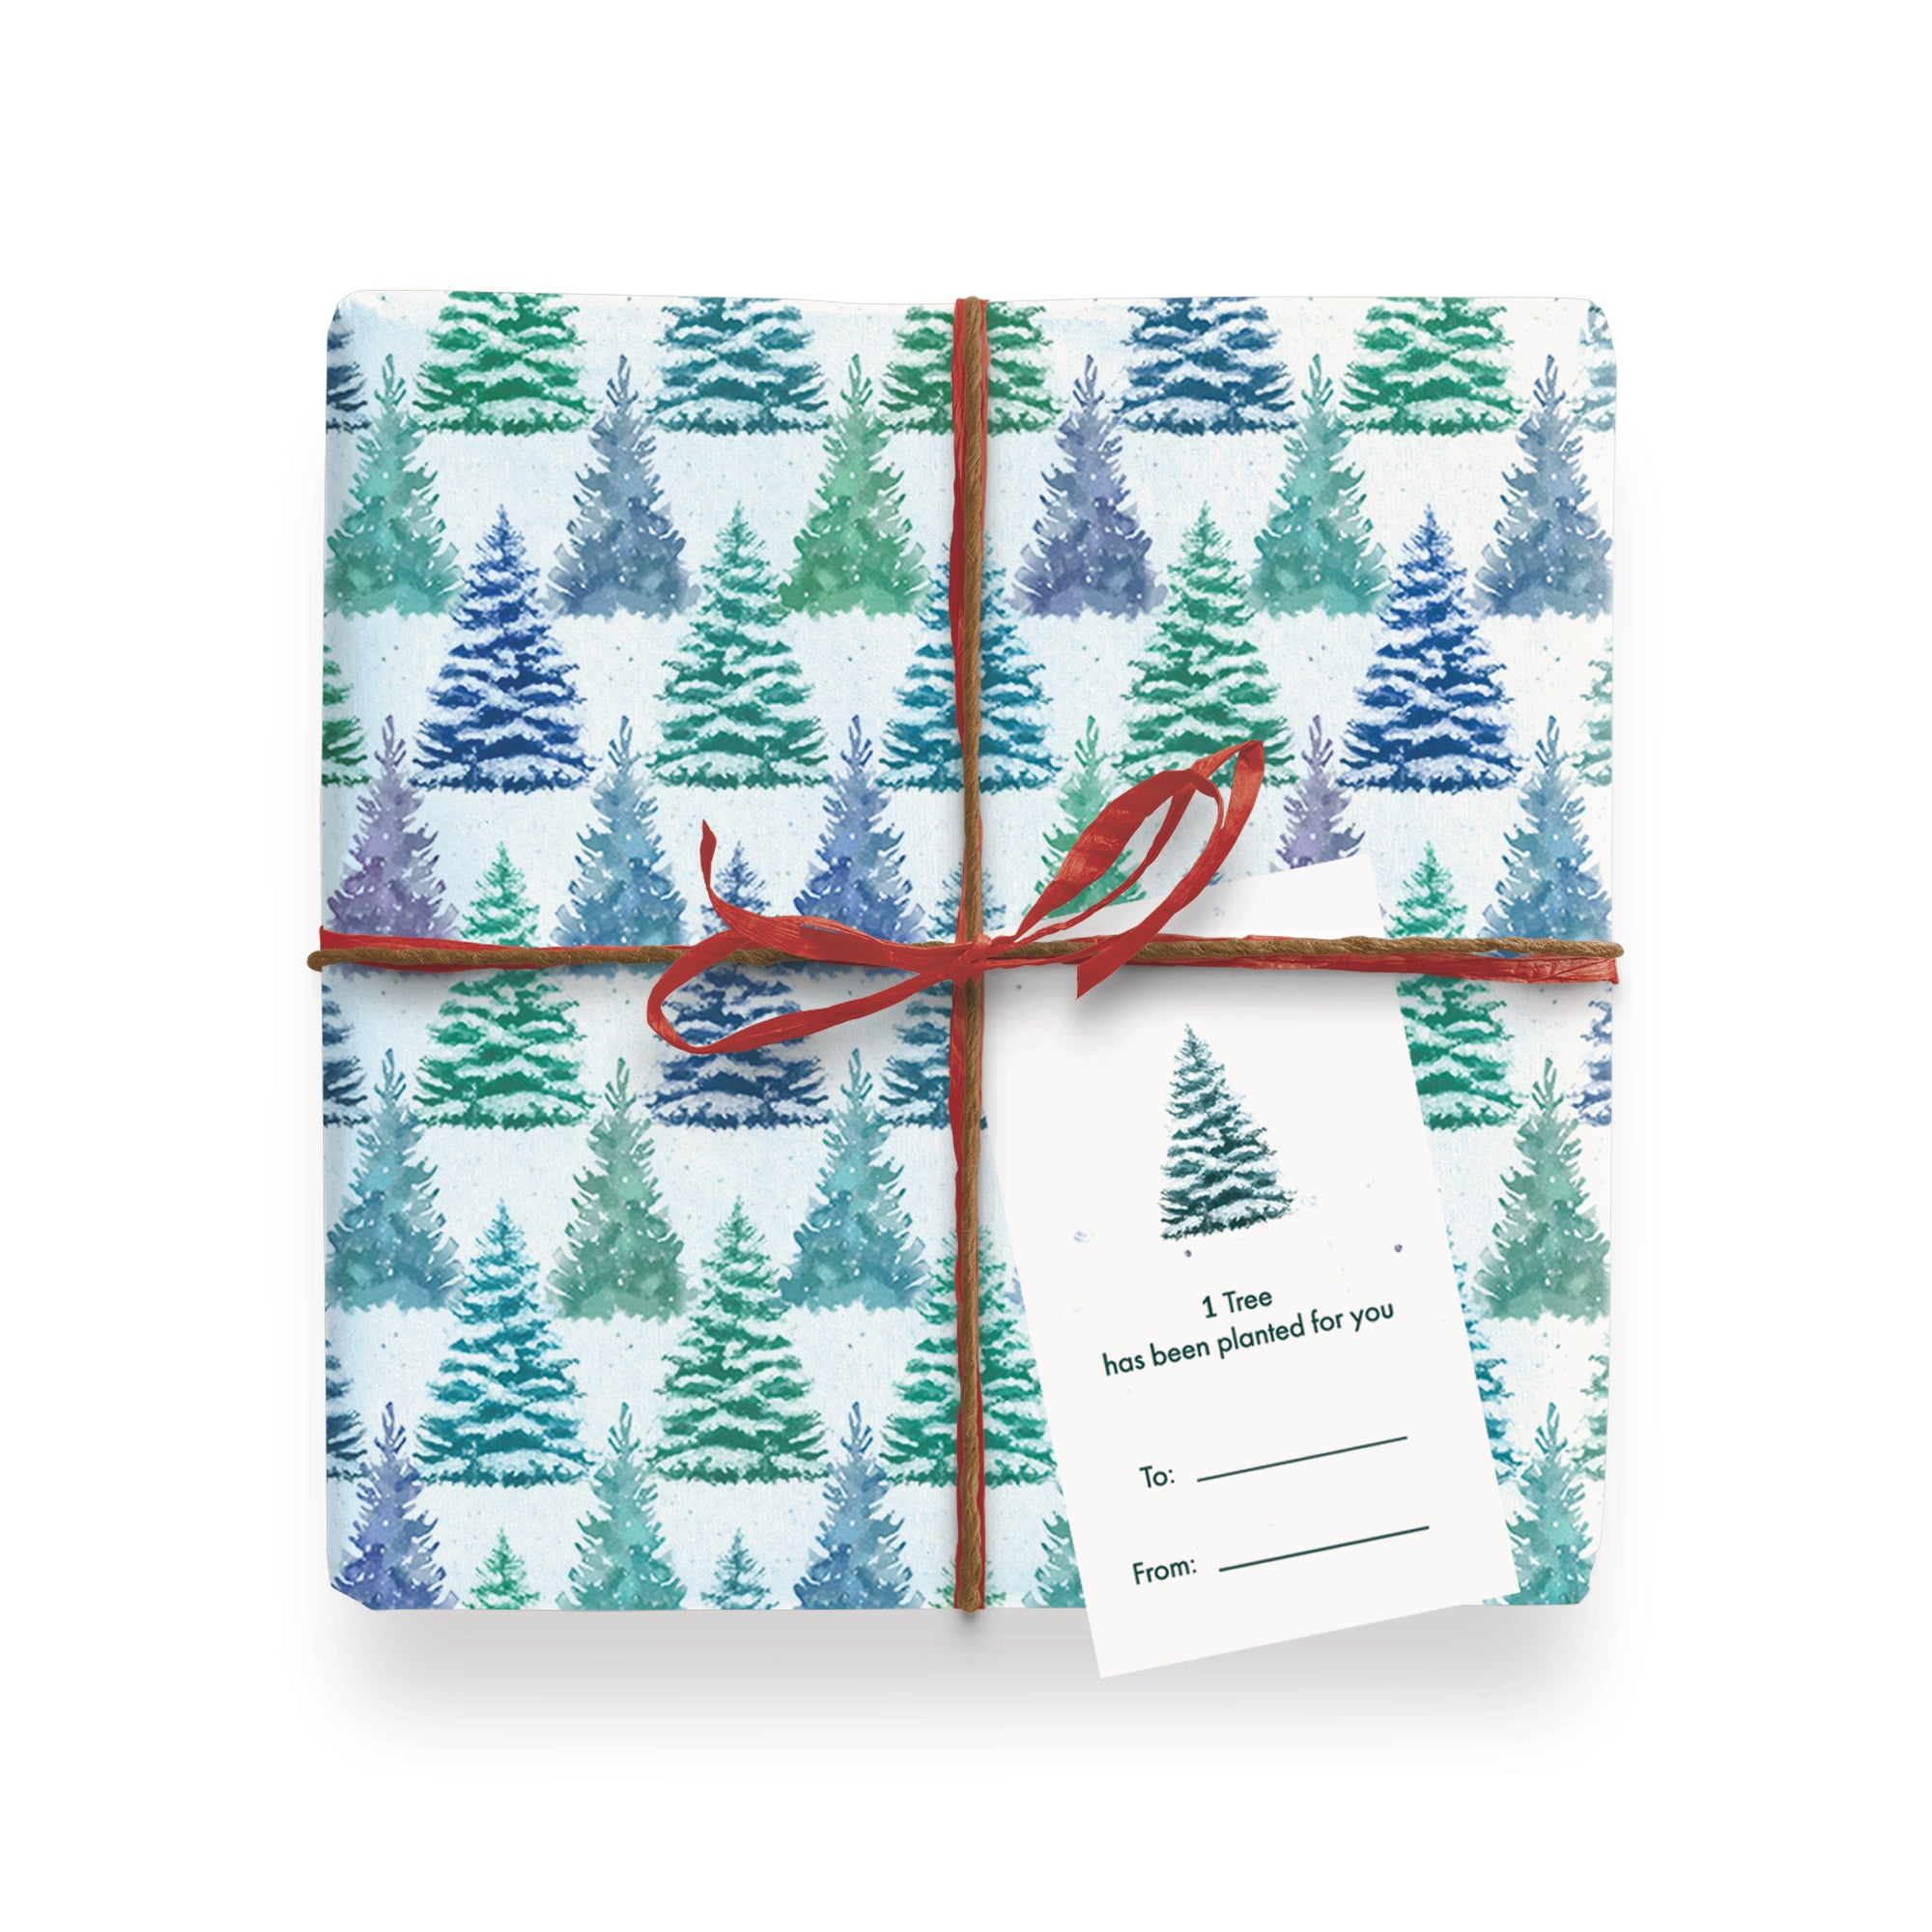 Festive Wrapping Paper Pack - 10 sheets